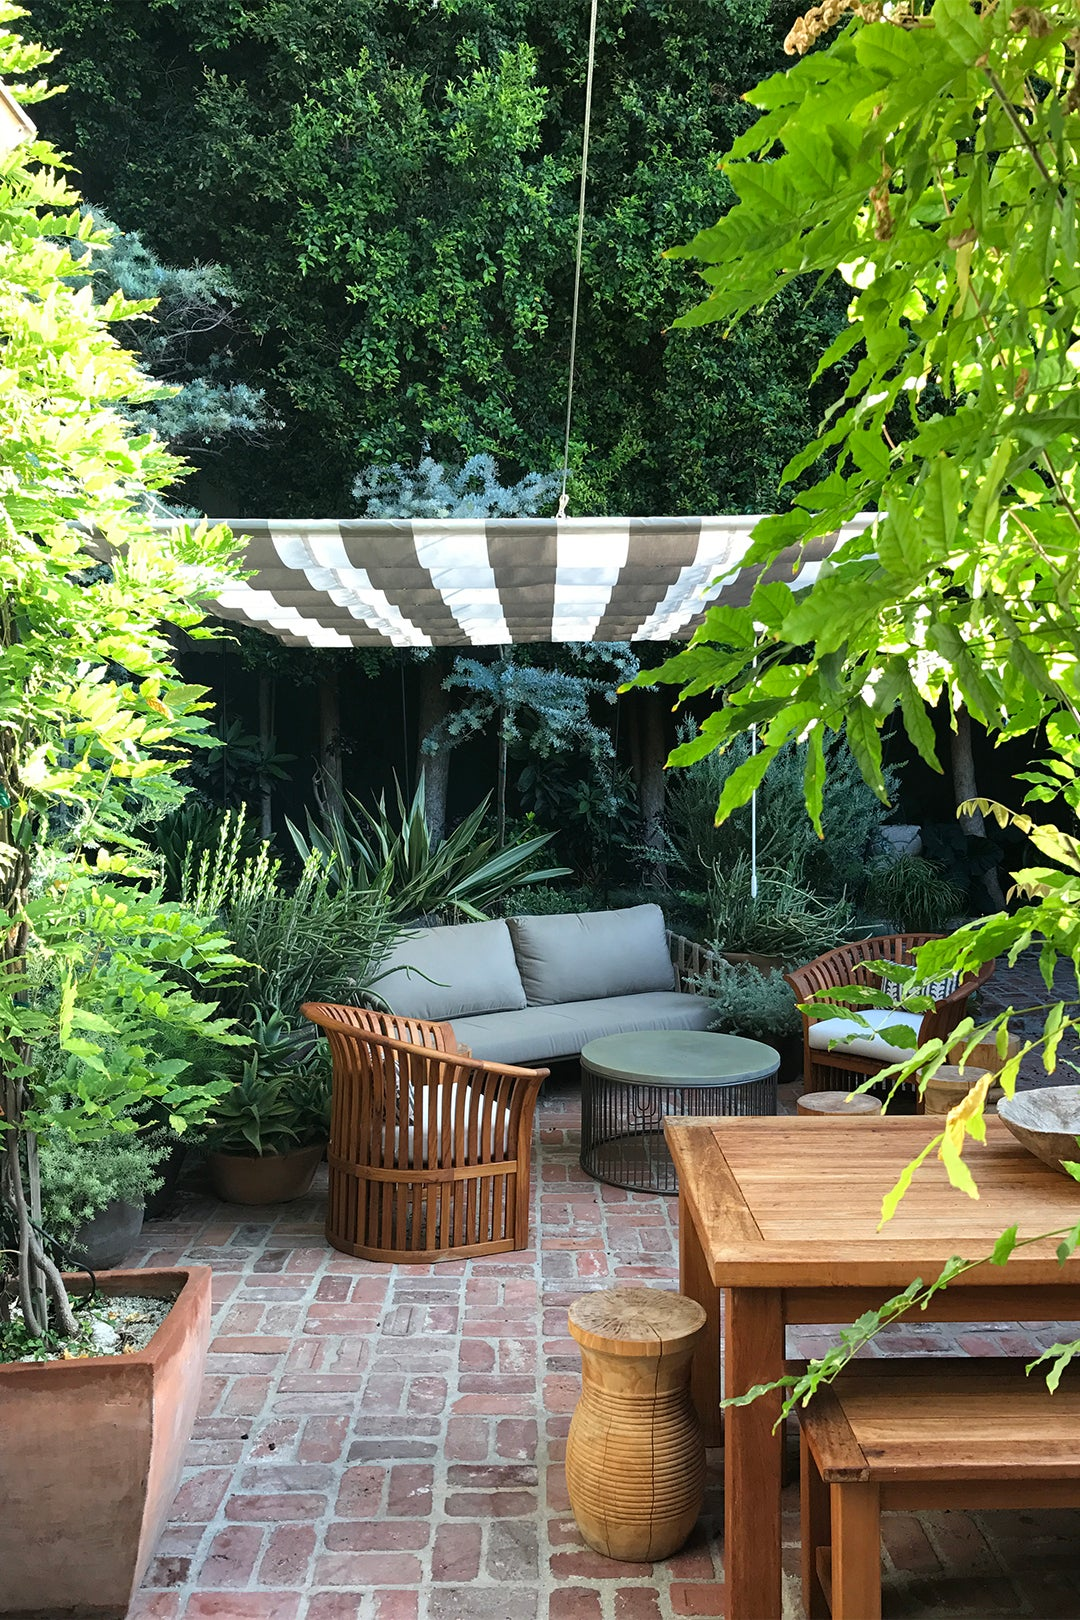 outdoor sitting area with striped canopy covering it